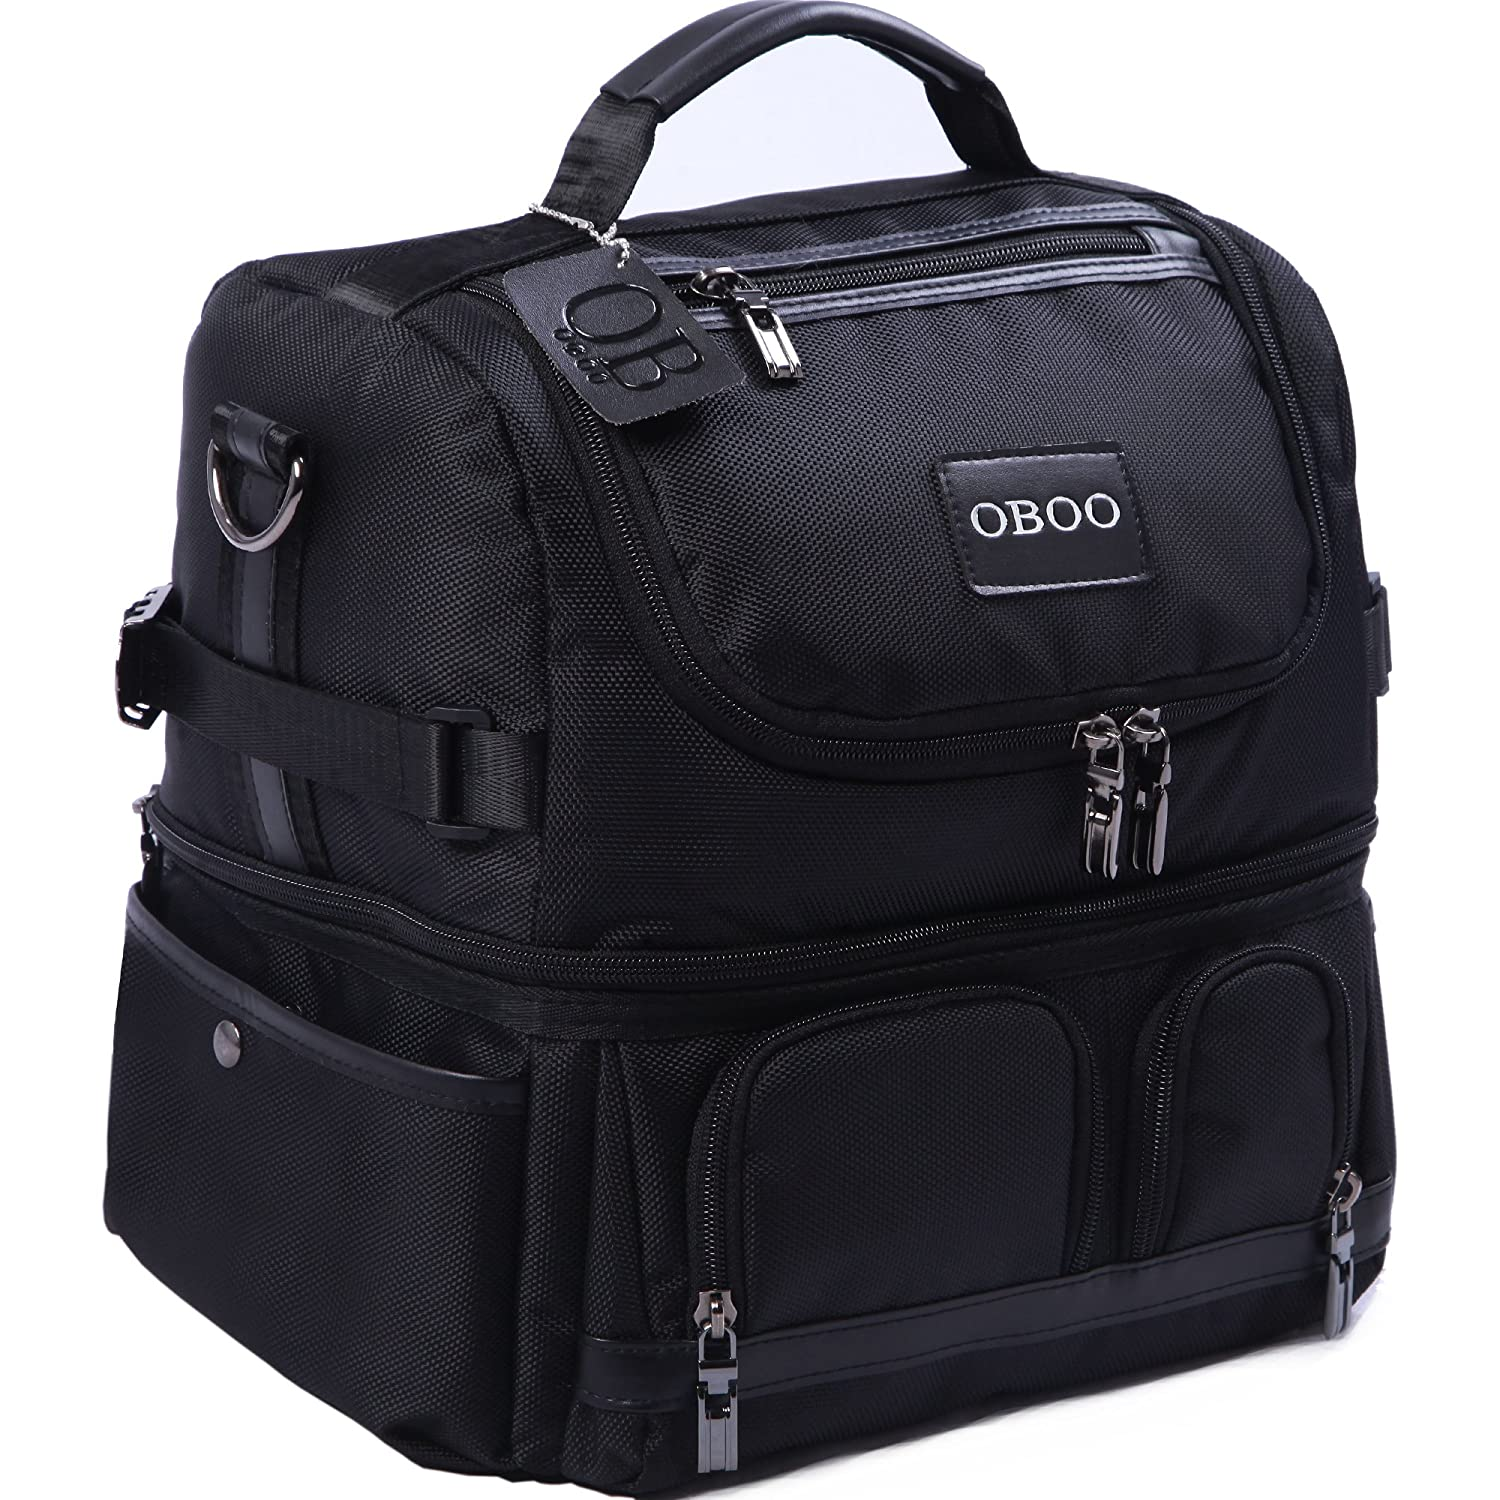 OBOO Adult Lunch Box Insulated Lunch Bag,Double Reusable Waterproof Large Cooler Tote with Shoulder Strap for Men&Women(black, 12can) Dream Bear Trade Co. Ltd